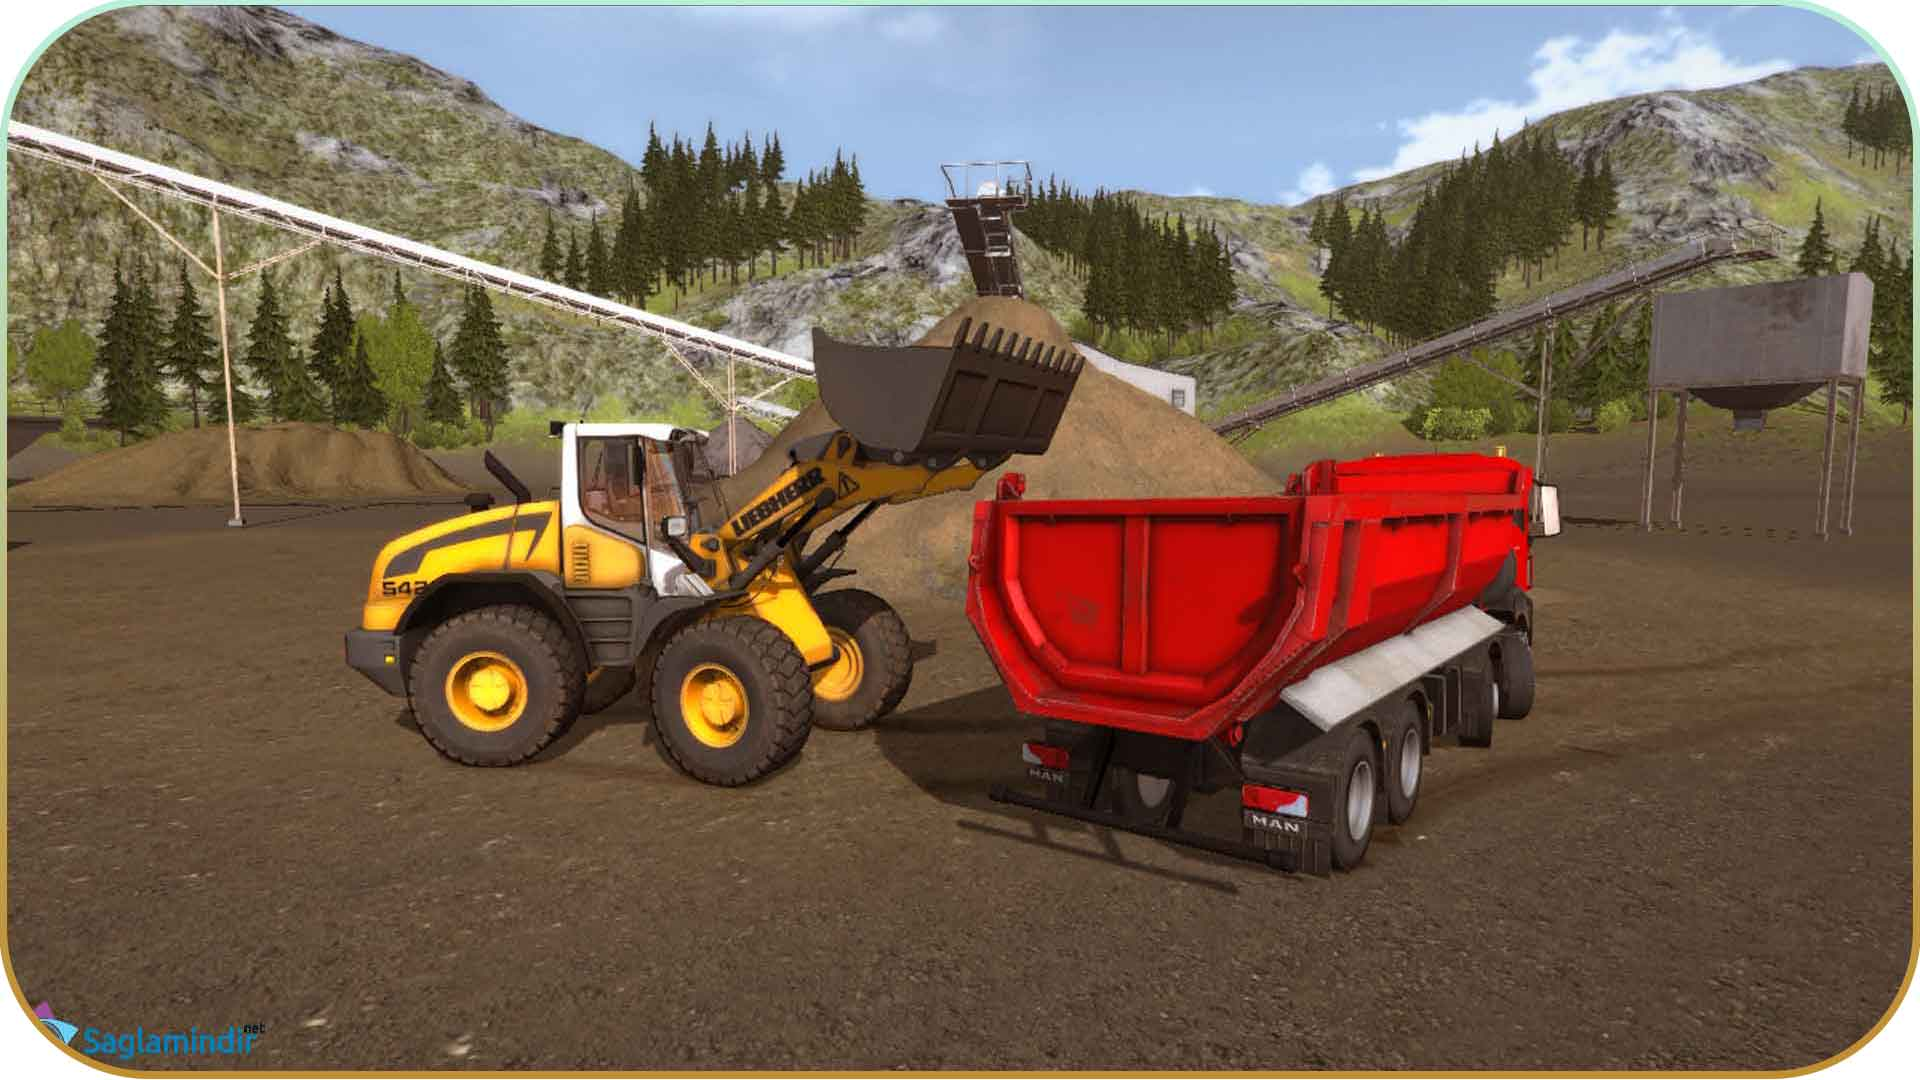 Construction Simulator 2015 saglamindir